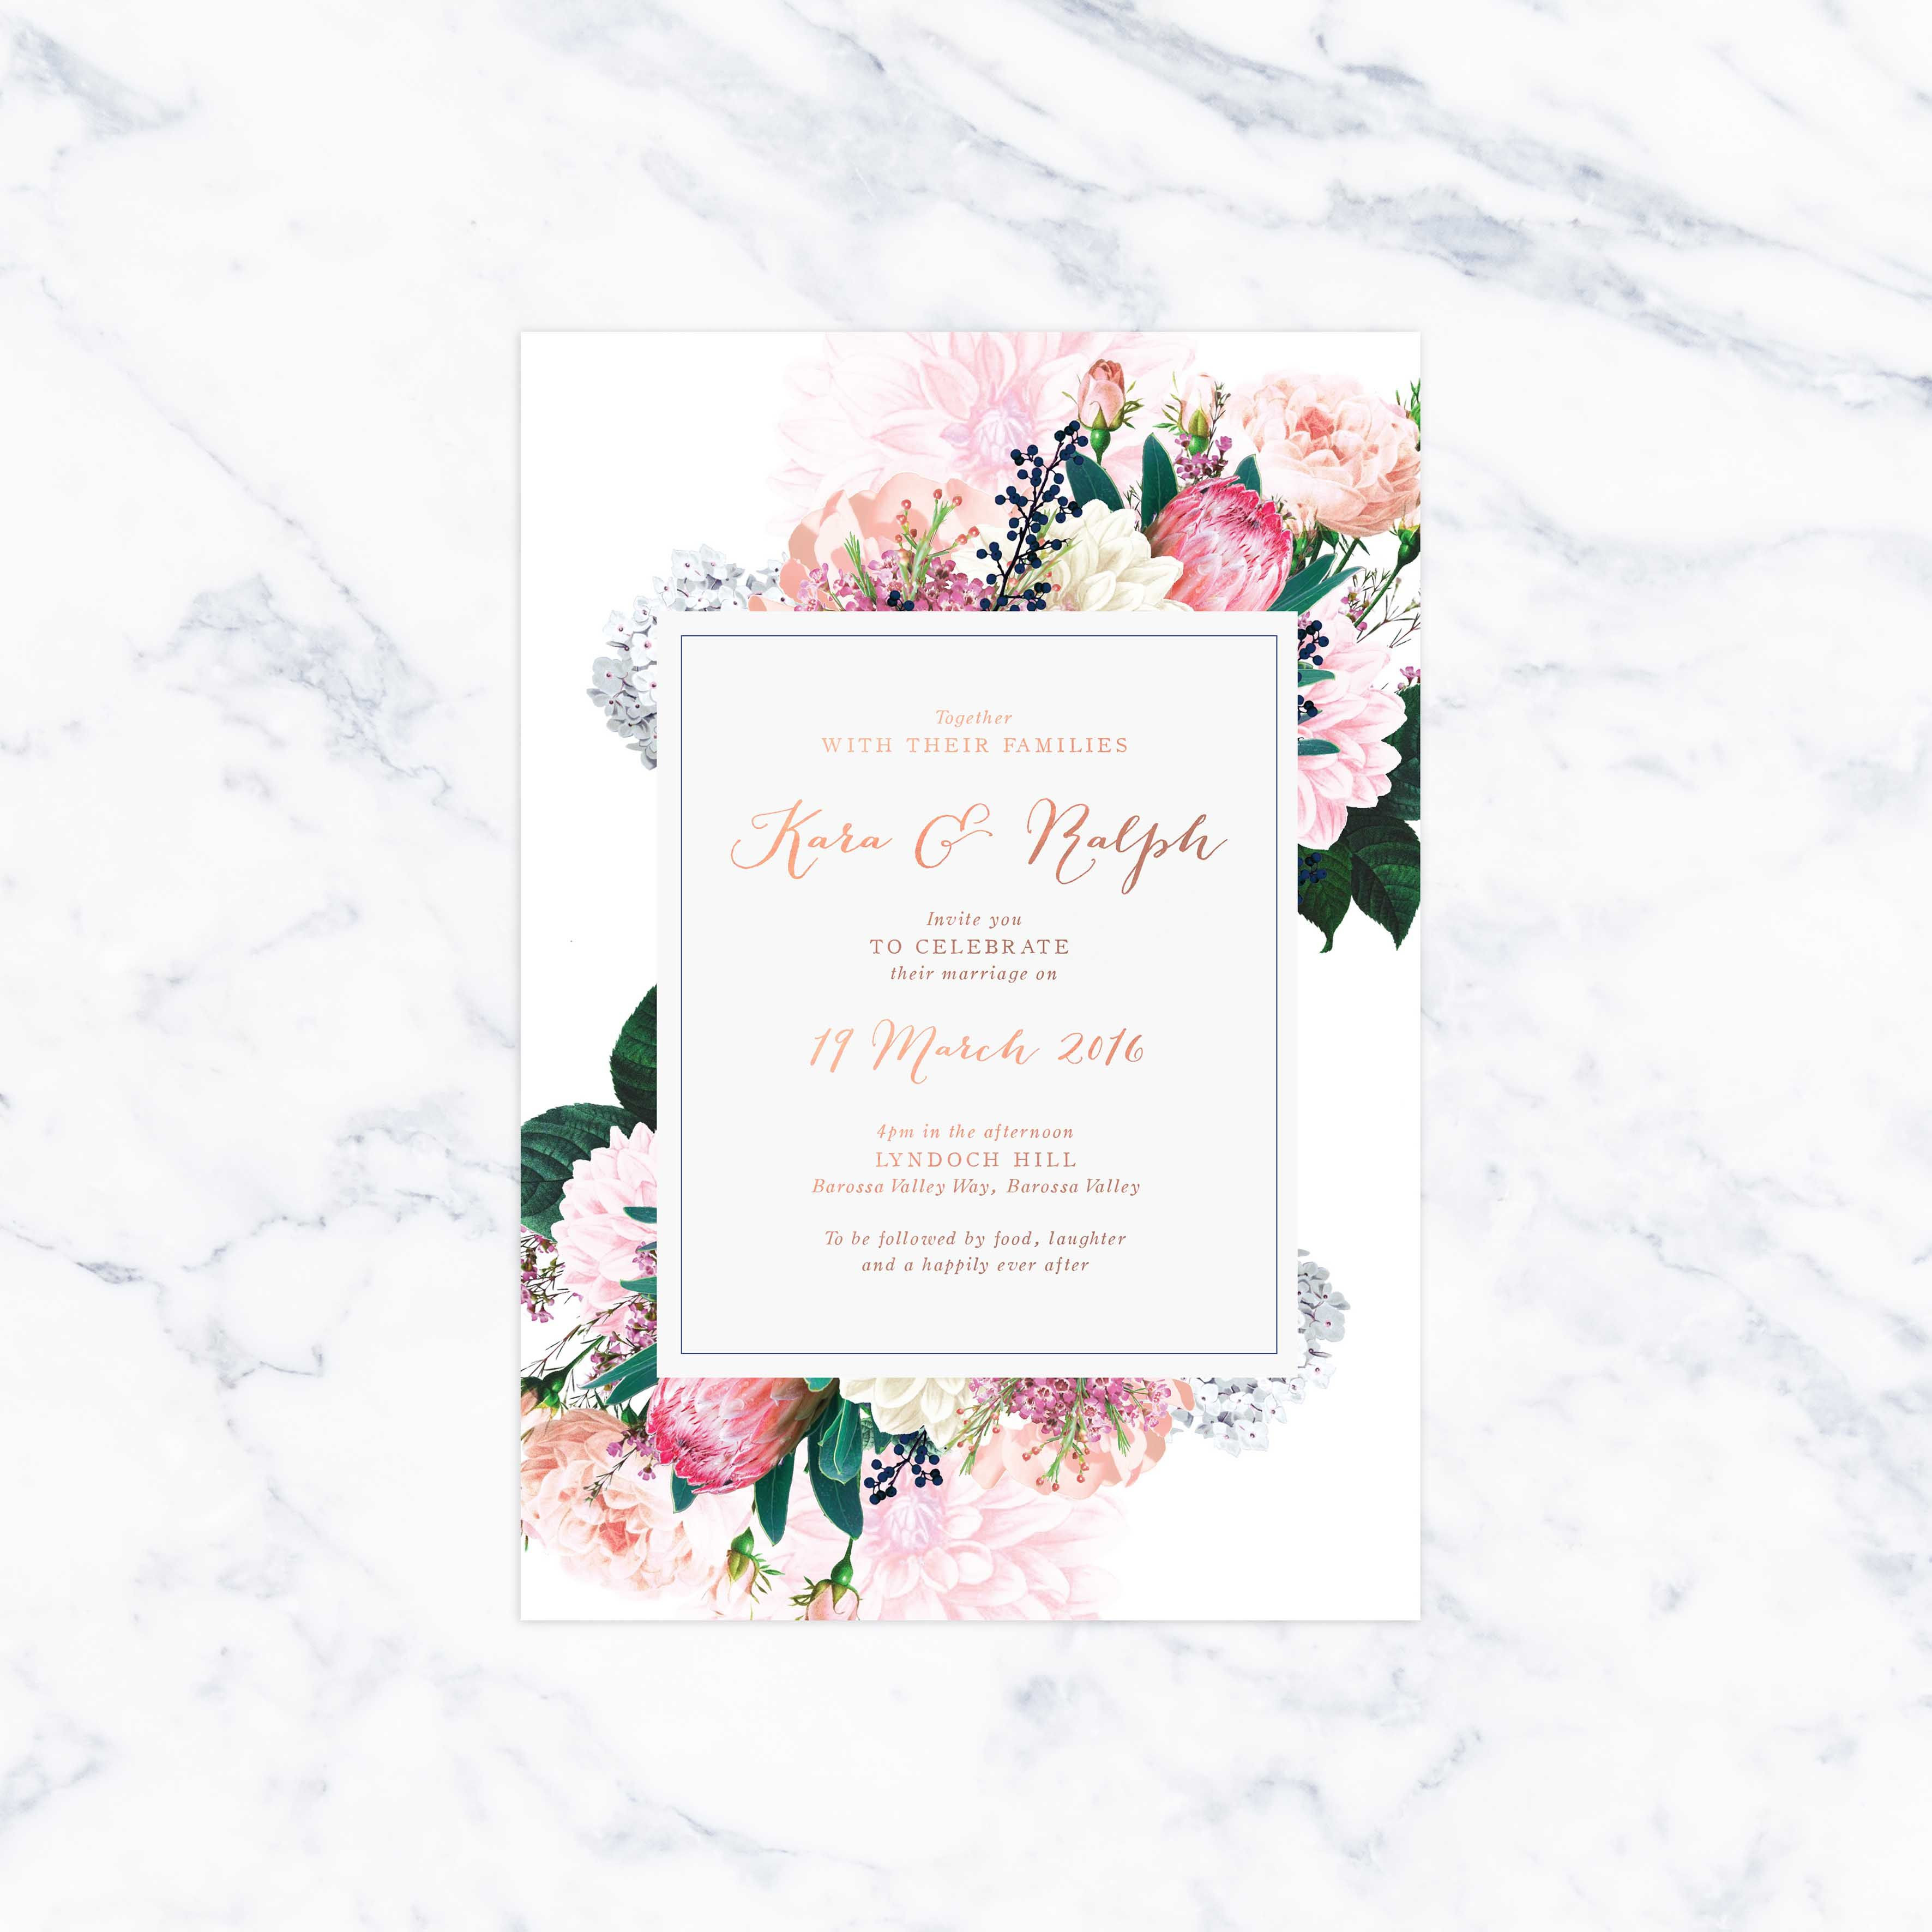 Native Floral Pretty Protea Foil Wedding Invitations Rose Gold Foil Metallic Printing Florals Botanical Bouquet Custom Wedding Stationery Australia Creams